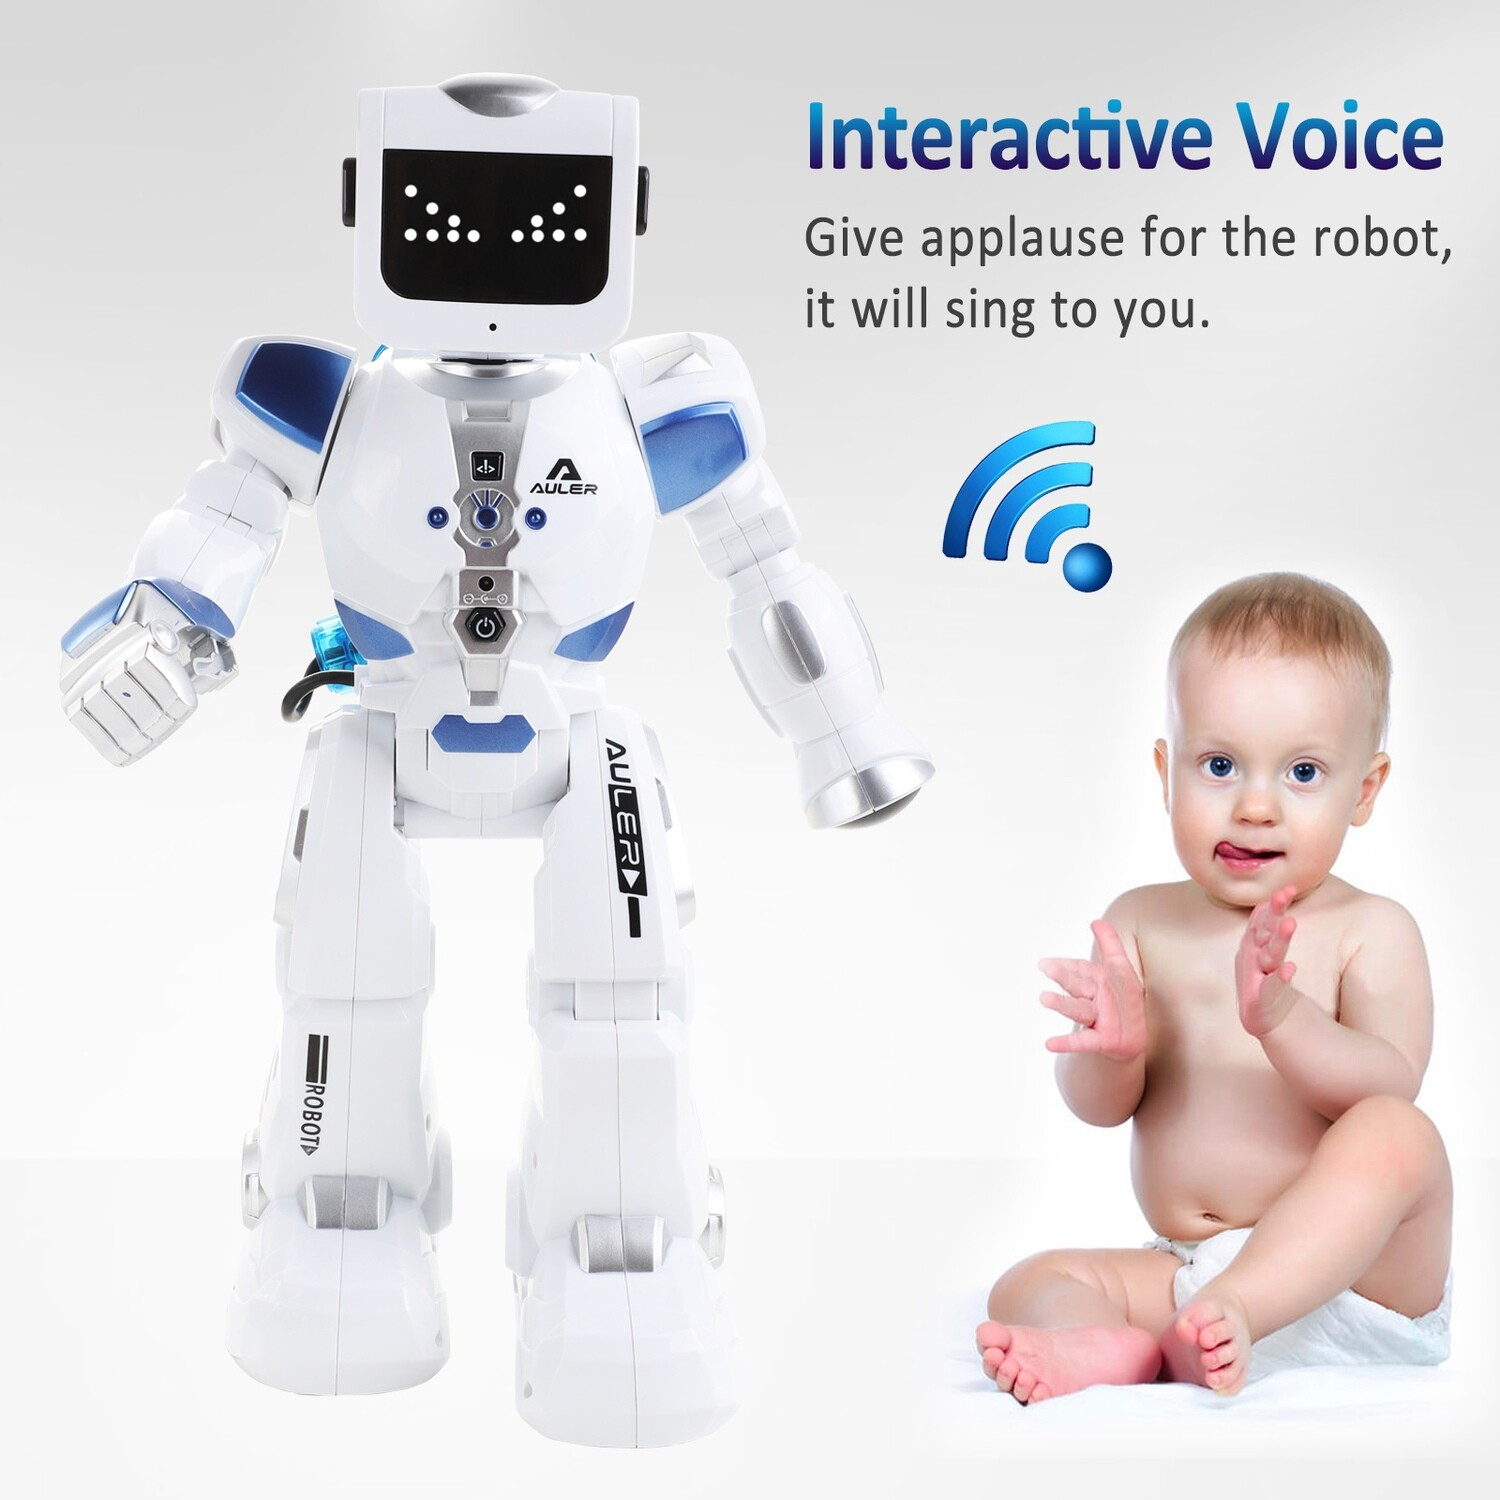 Intelligent dancing interactive robot for kids with FREE Shipping.